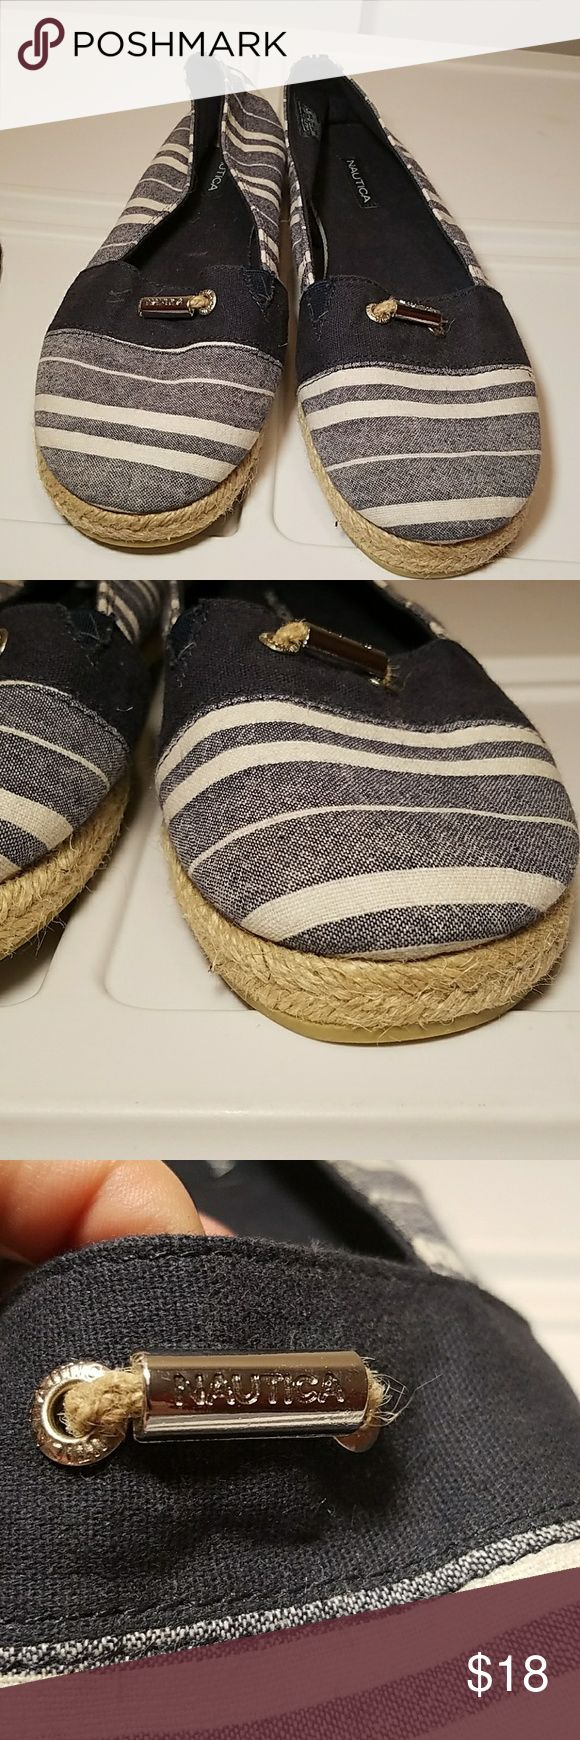 Nwot Brand new nautica ballet flats Brand new never worn, bought a half size too big and didnt notice, perfect condition, very nautical, rope bottom embellishment Nautica Shoes Flats & Loafers